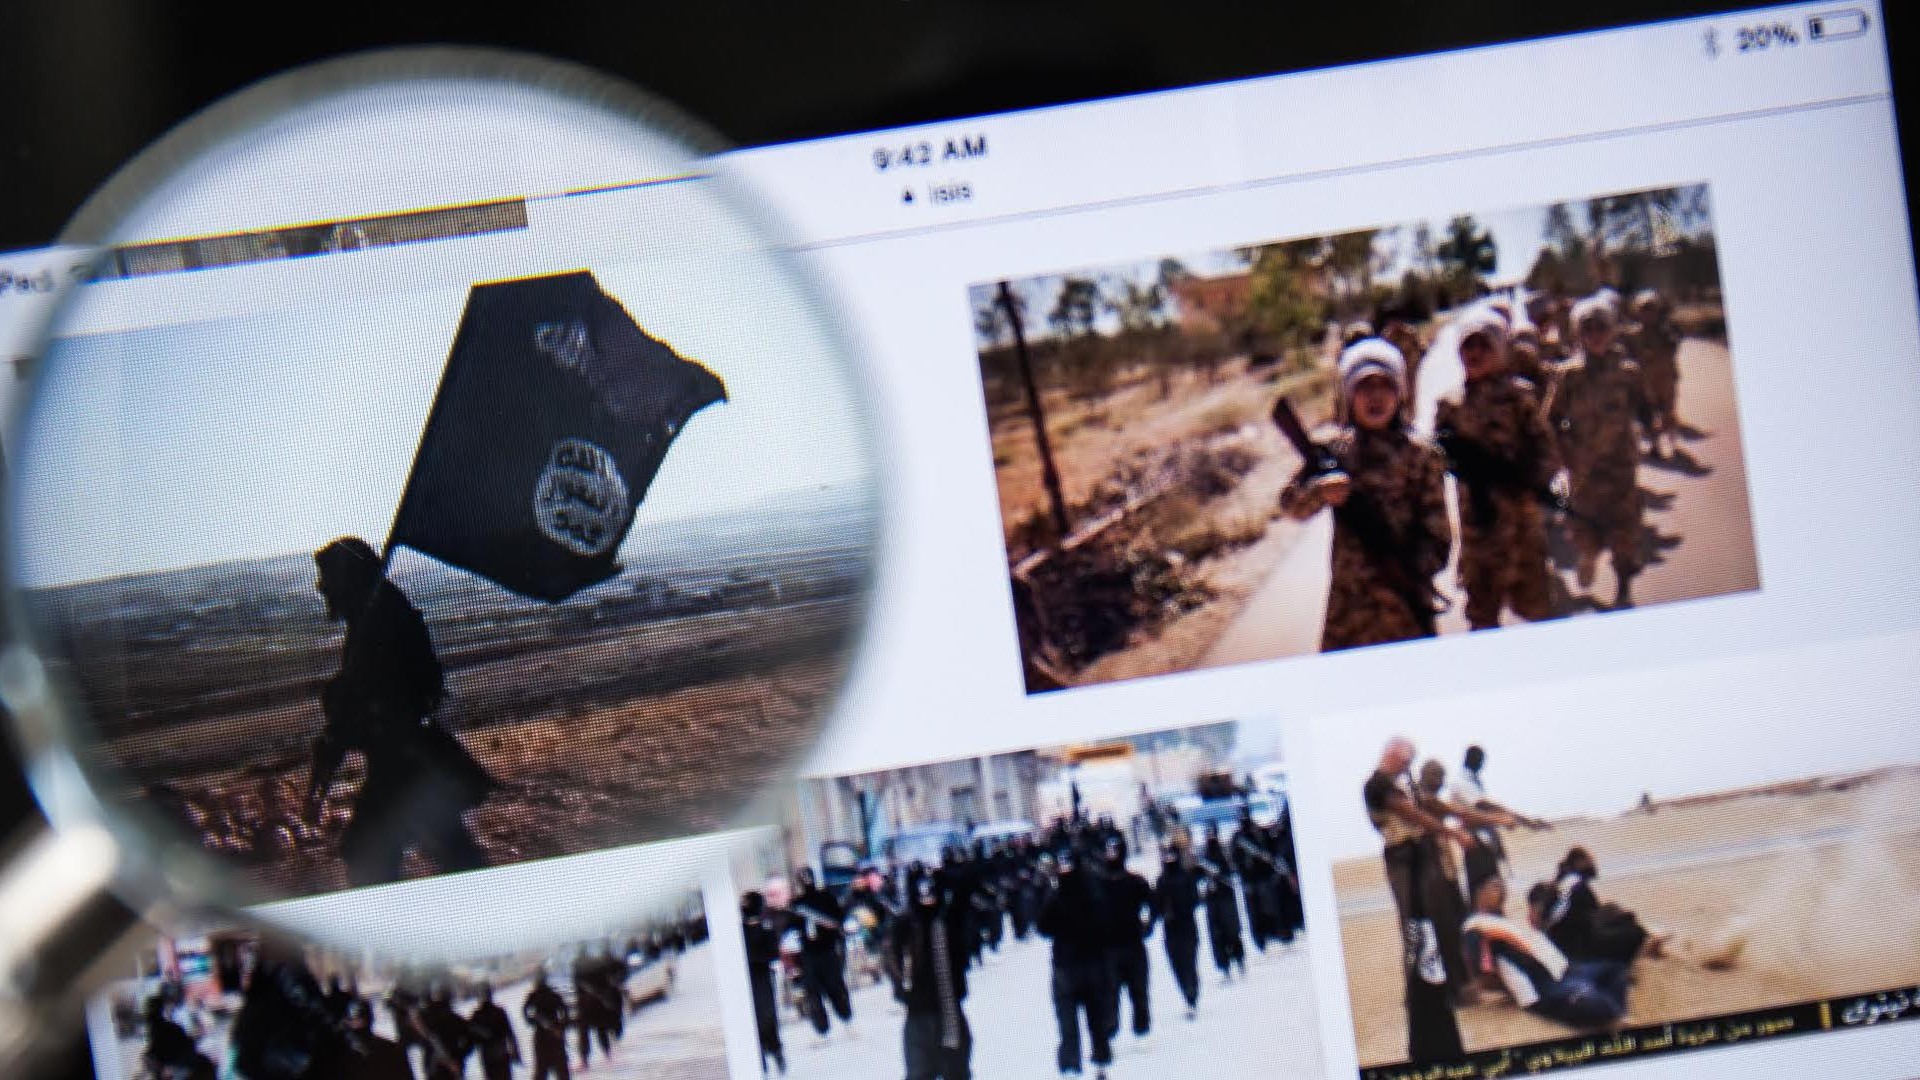 Mathematical Models Suggest New Ways of Targeting Pro-ISIS Groups Online